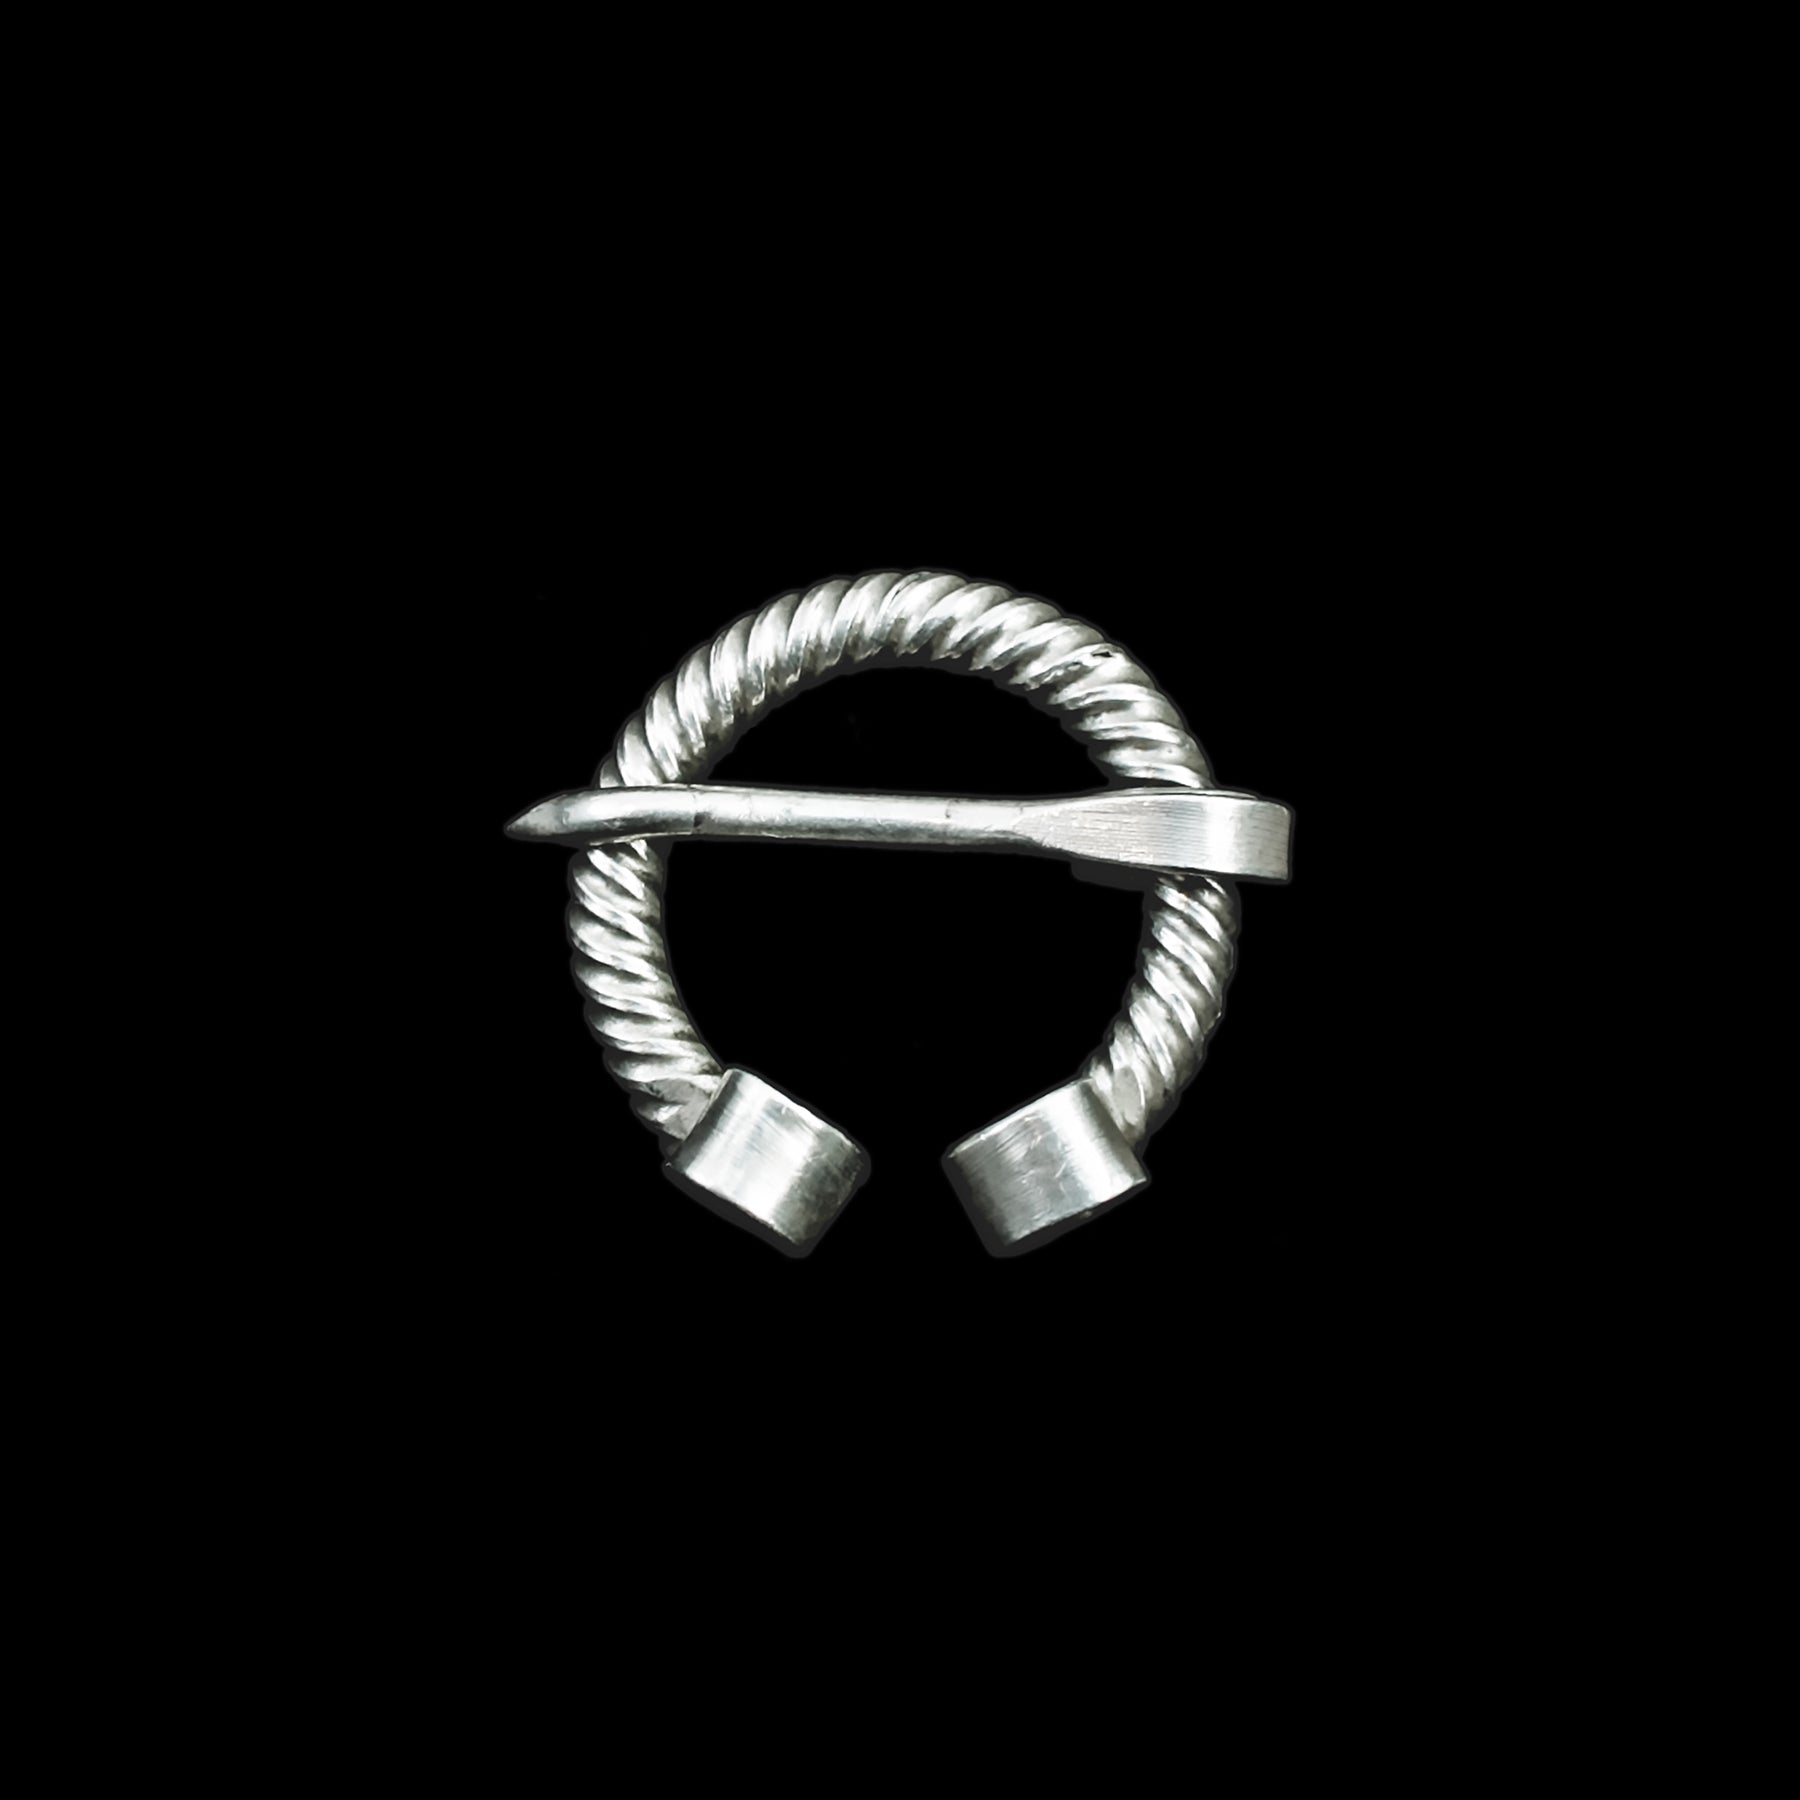 Twisted Silver Penannular Brooch / Clothes Pin